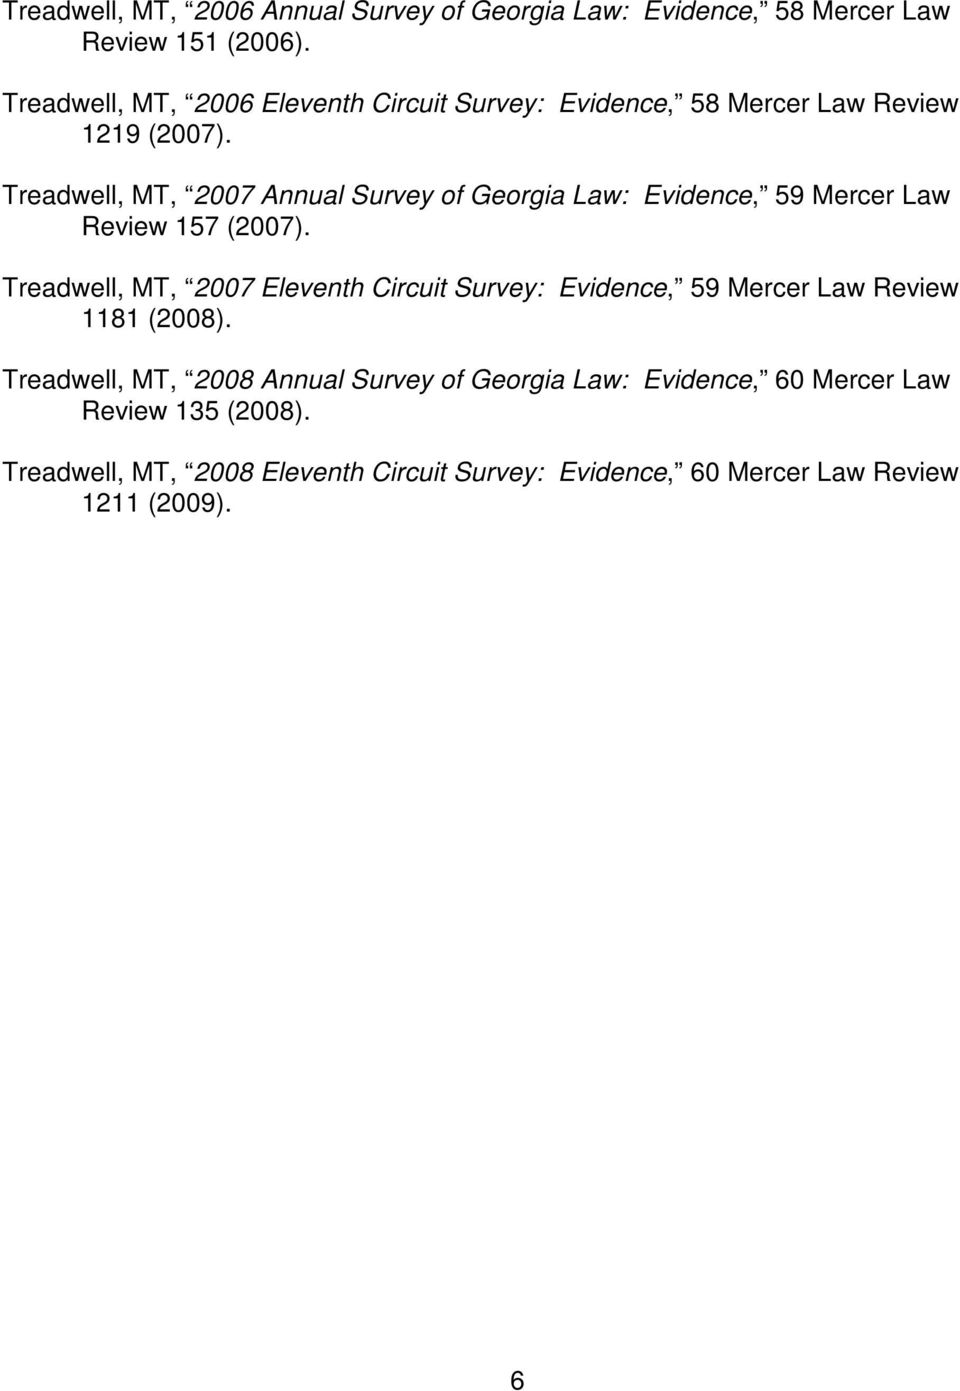 Treadwell, MT, 2007 Annual Survey of Georgia Law: Evidence, 59 Mercer Law Review 157 (2007).